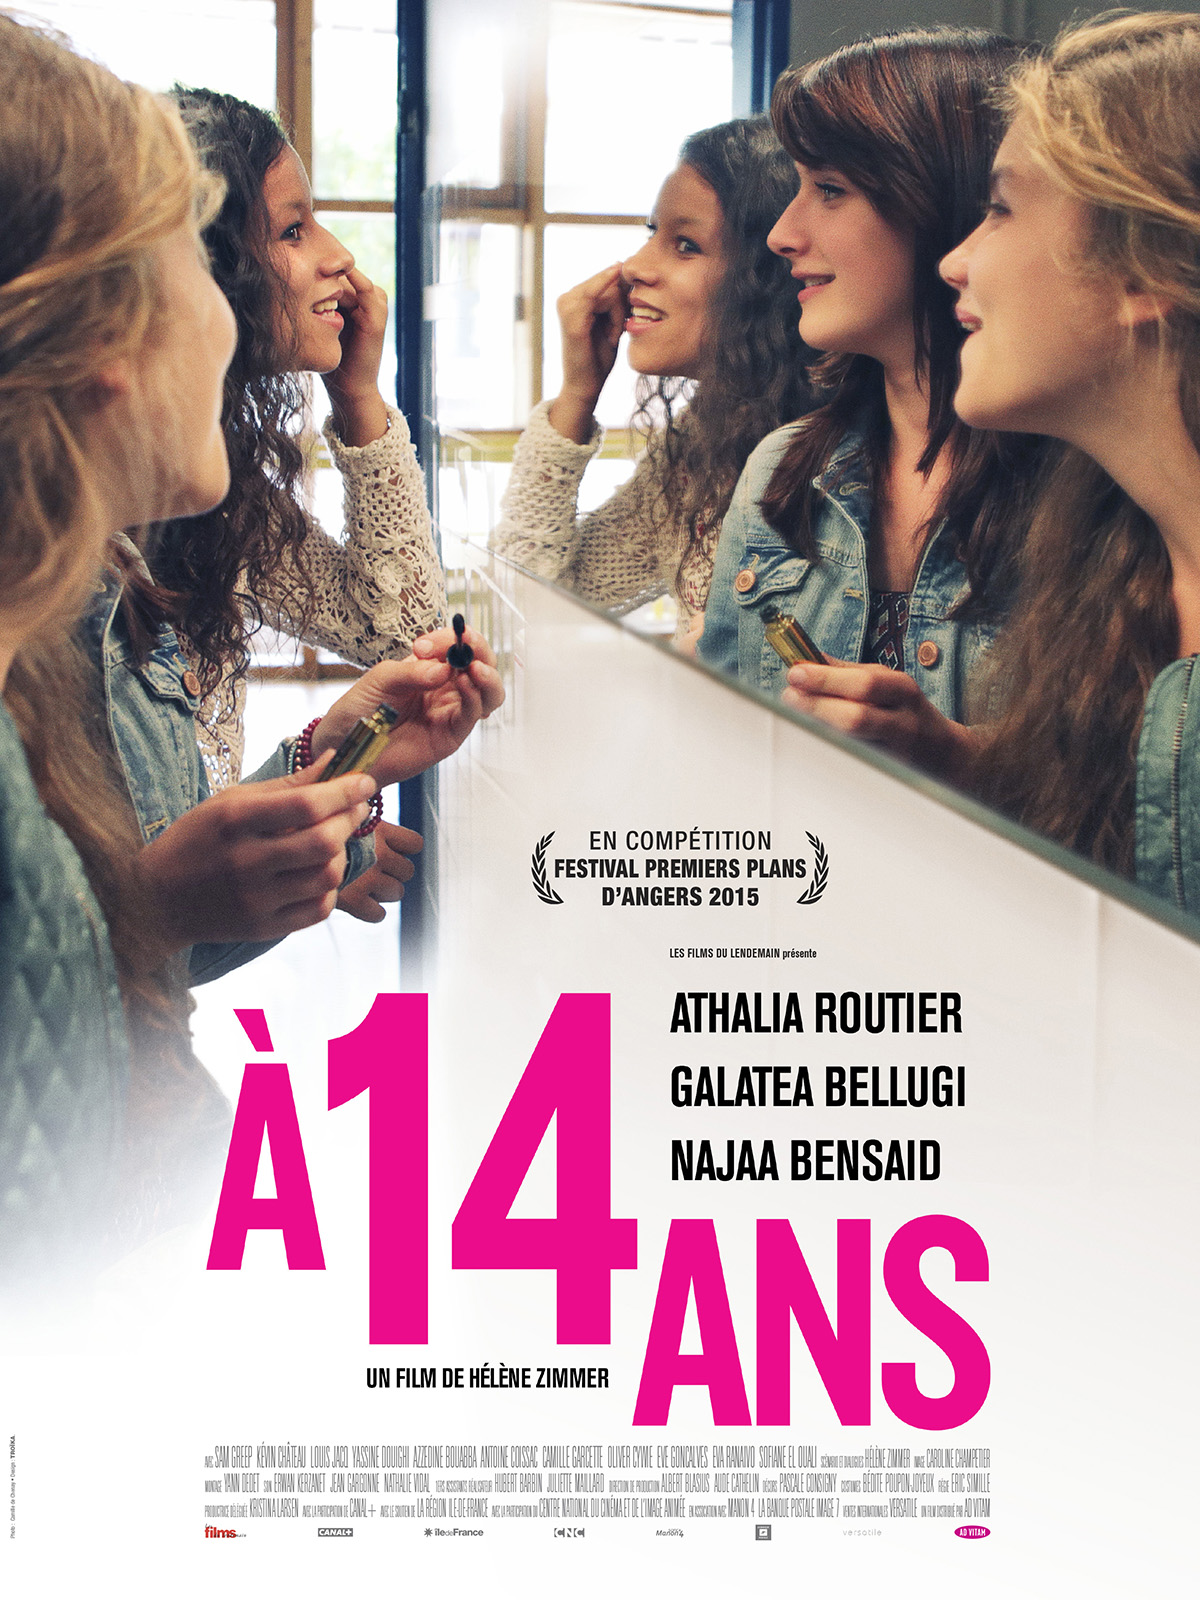 Jeux interdits de l'adolescence Streaming VF Film